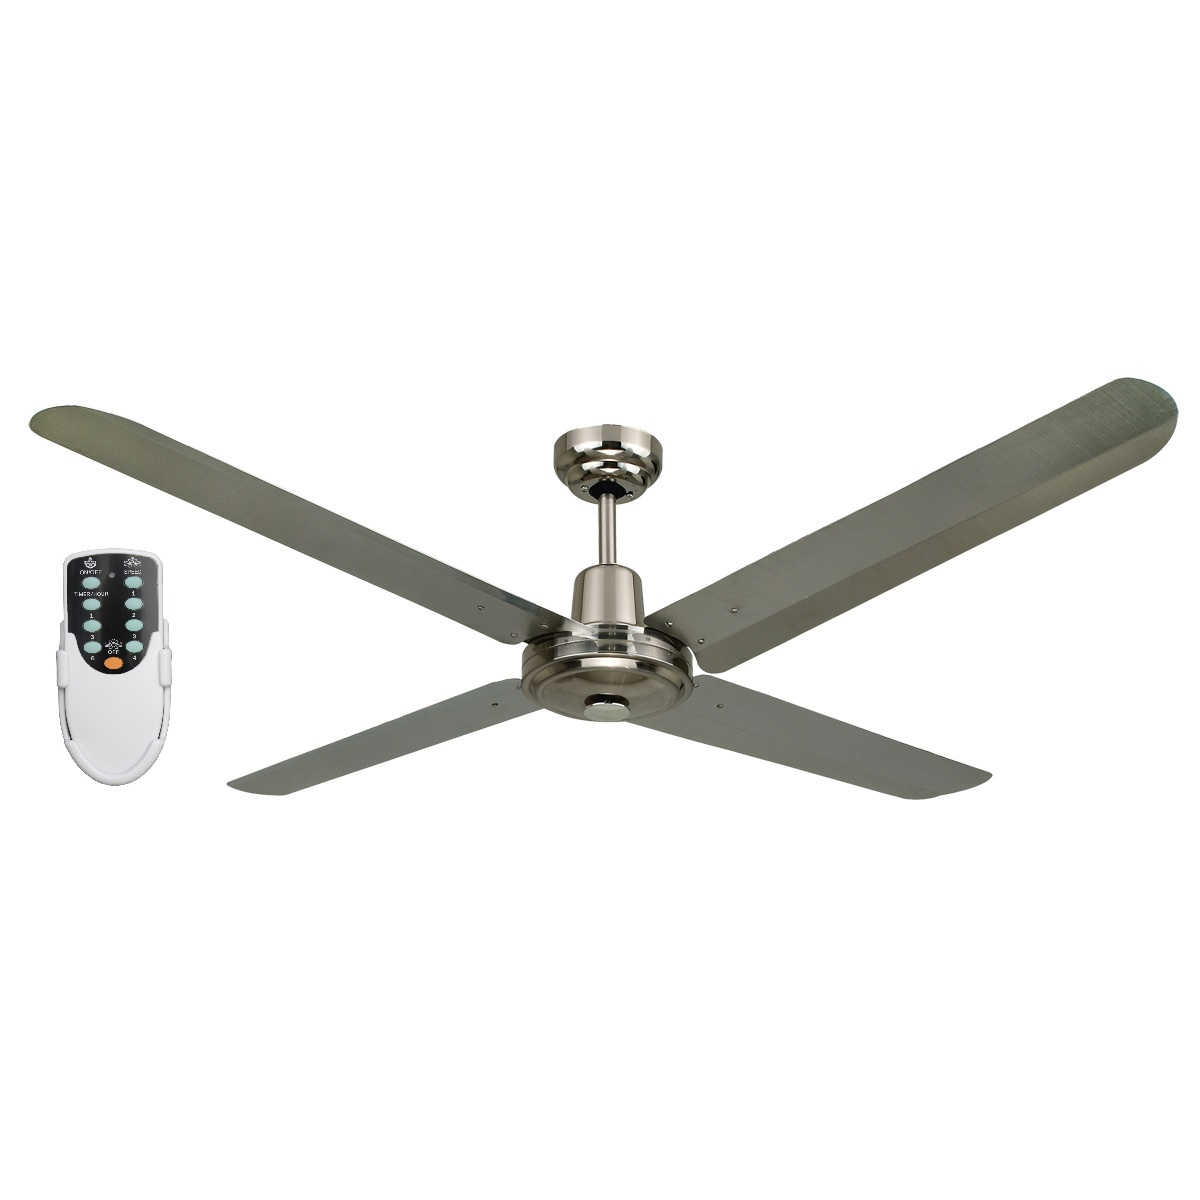 BLIZZARD48 1200mm 316SS Ceiling Fan Remote BLIZZARD48